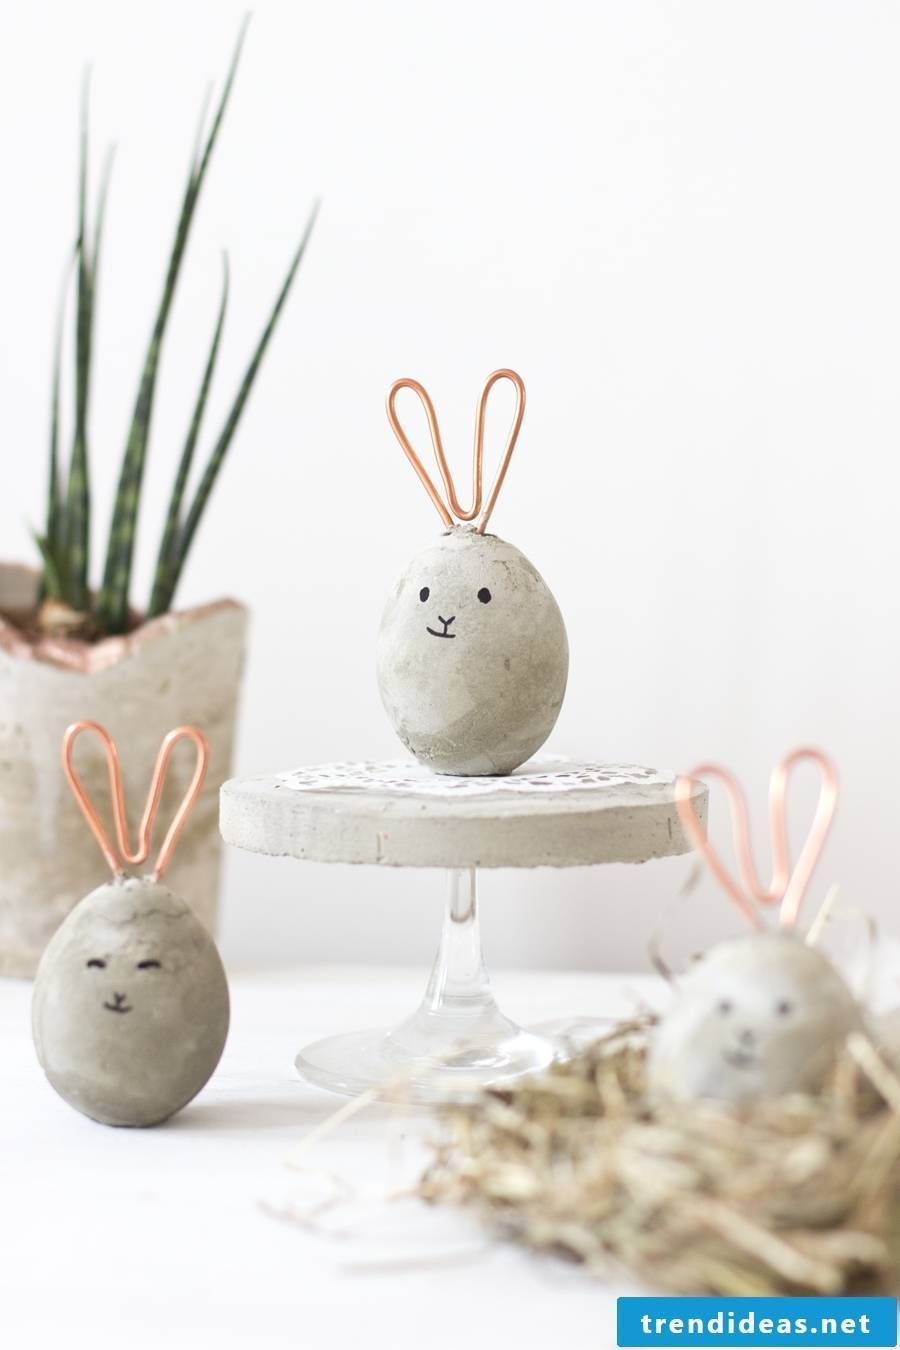 DIY Easter bunnies Craft: Create a beautiful specimen of concrete in the form of the Easter Bunny